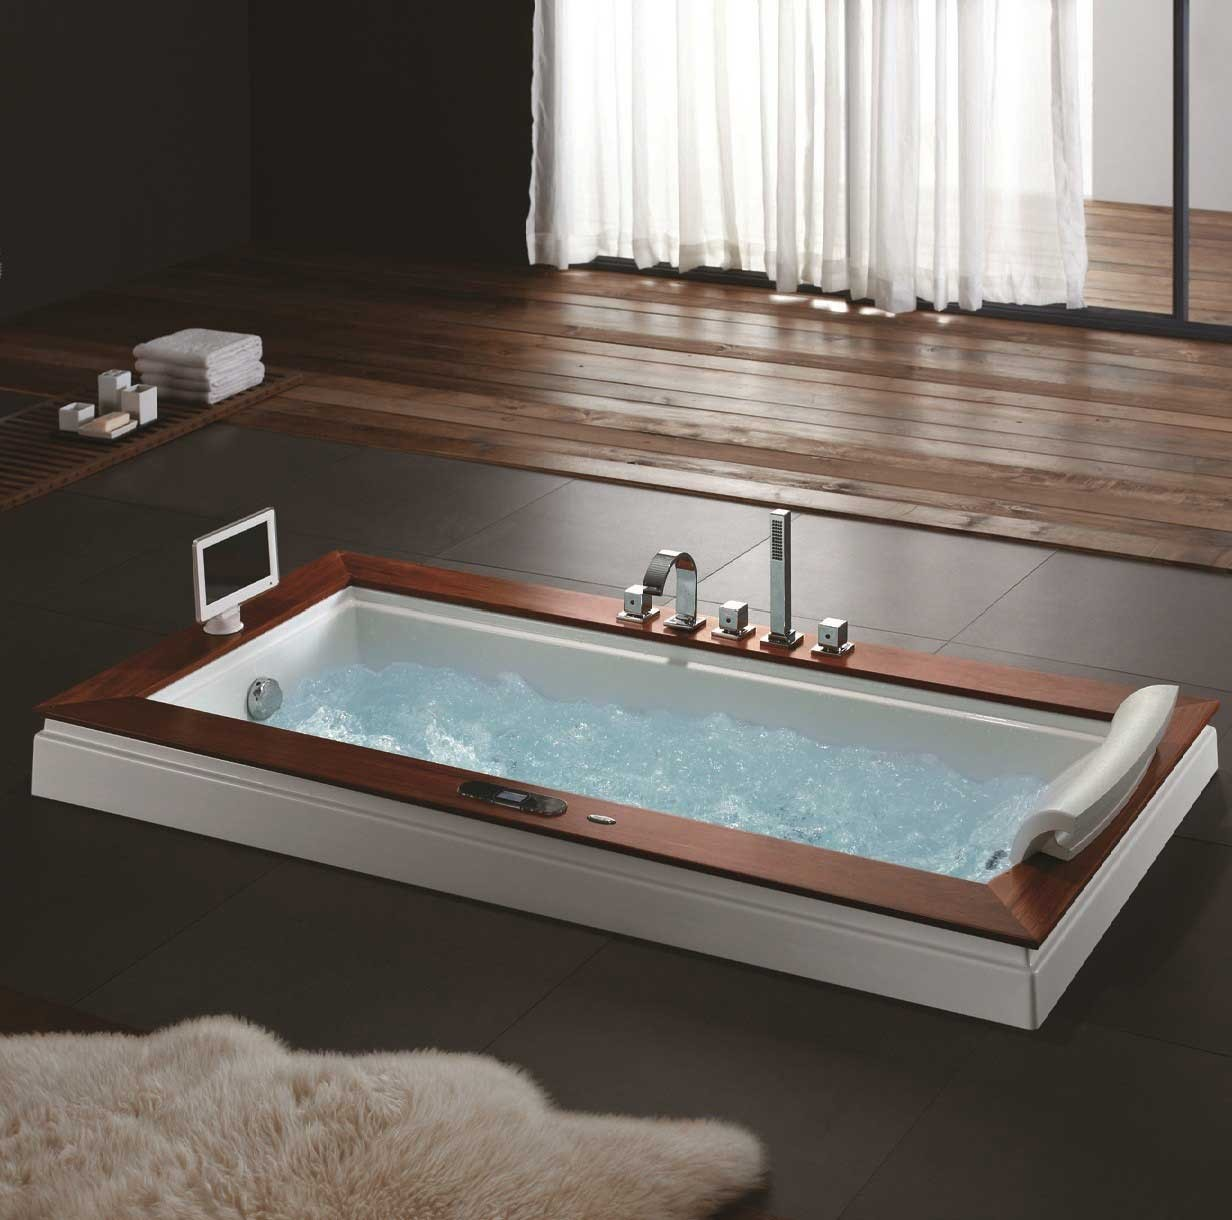 whirlpool bathtub. Madison Luxury Whirlpool Tub